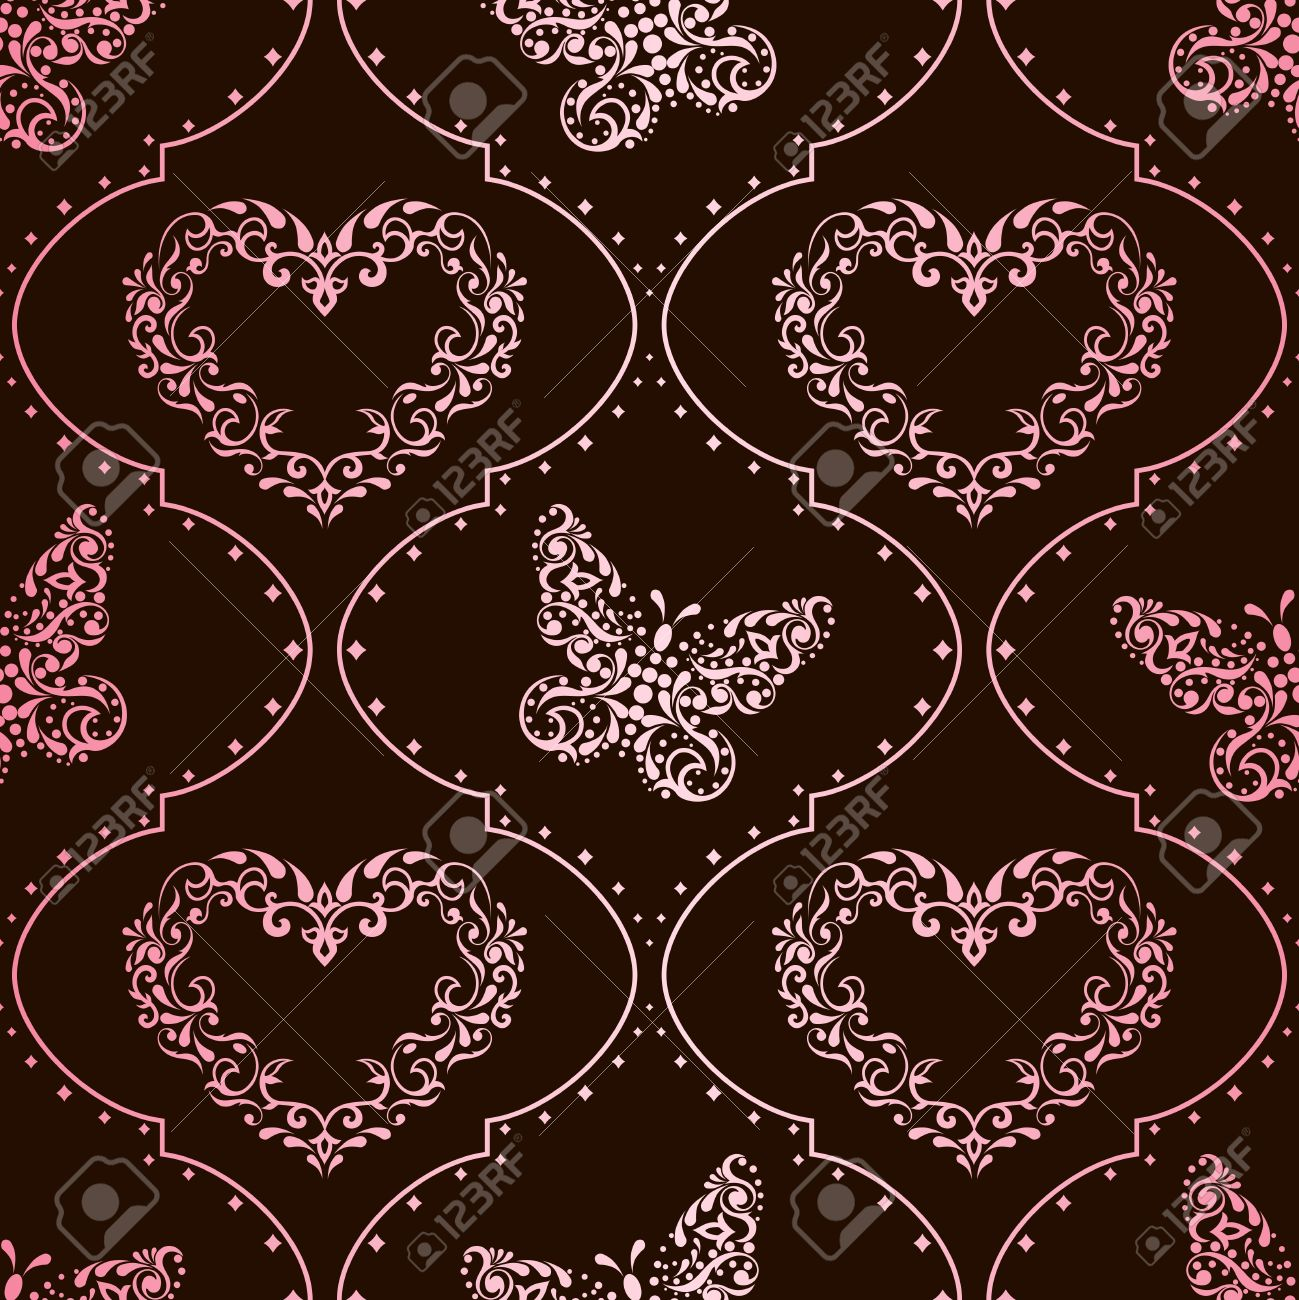 Romantic pink and brown vintage seamless background with intricate design. Graphics are grouped and in several layers for easy editing. The file can be scaled to any size. Stock Vector - 8624454